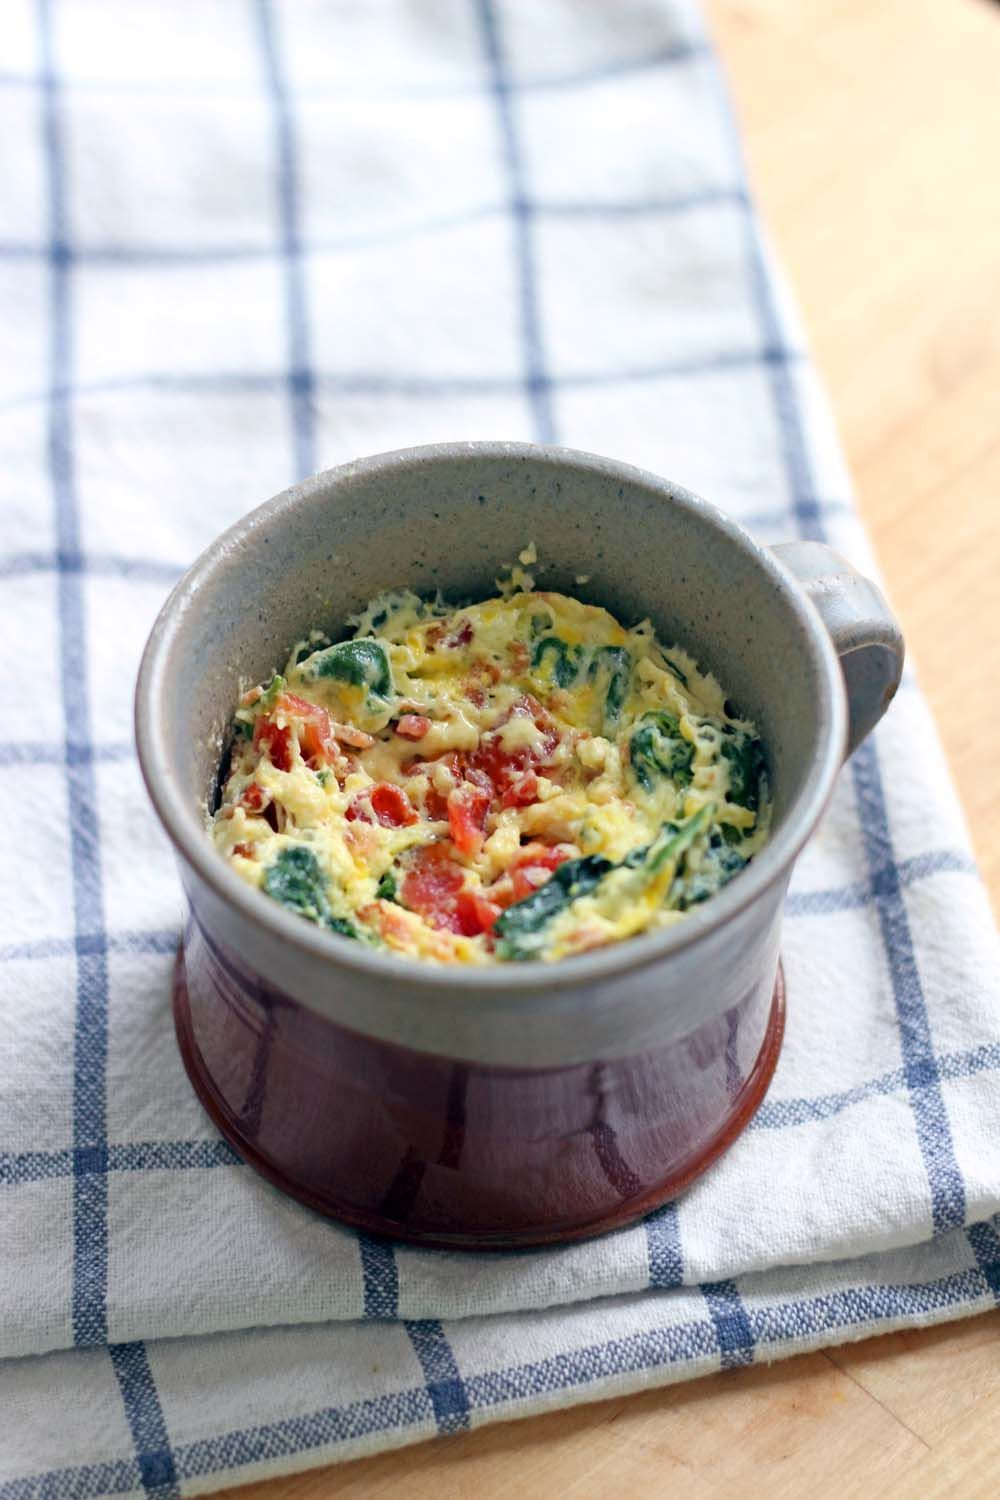 Spinach and Cheddar Microwave Quiche in a Mug Recipe